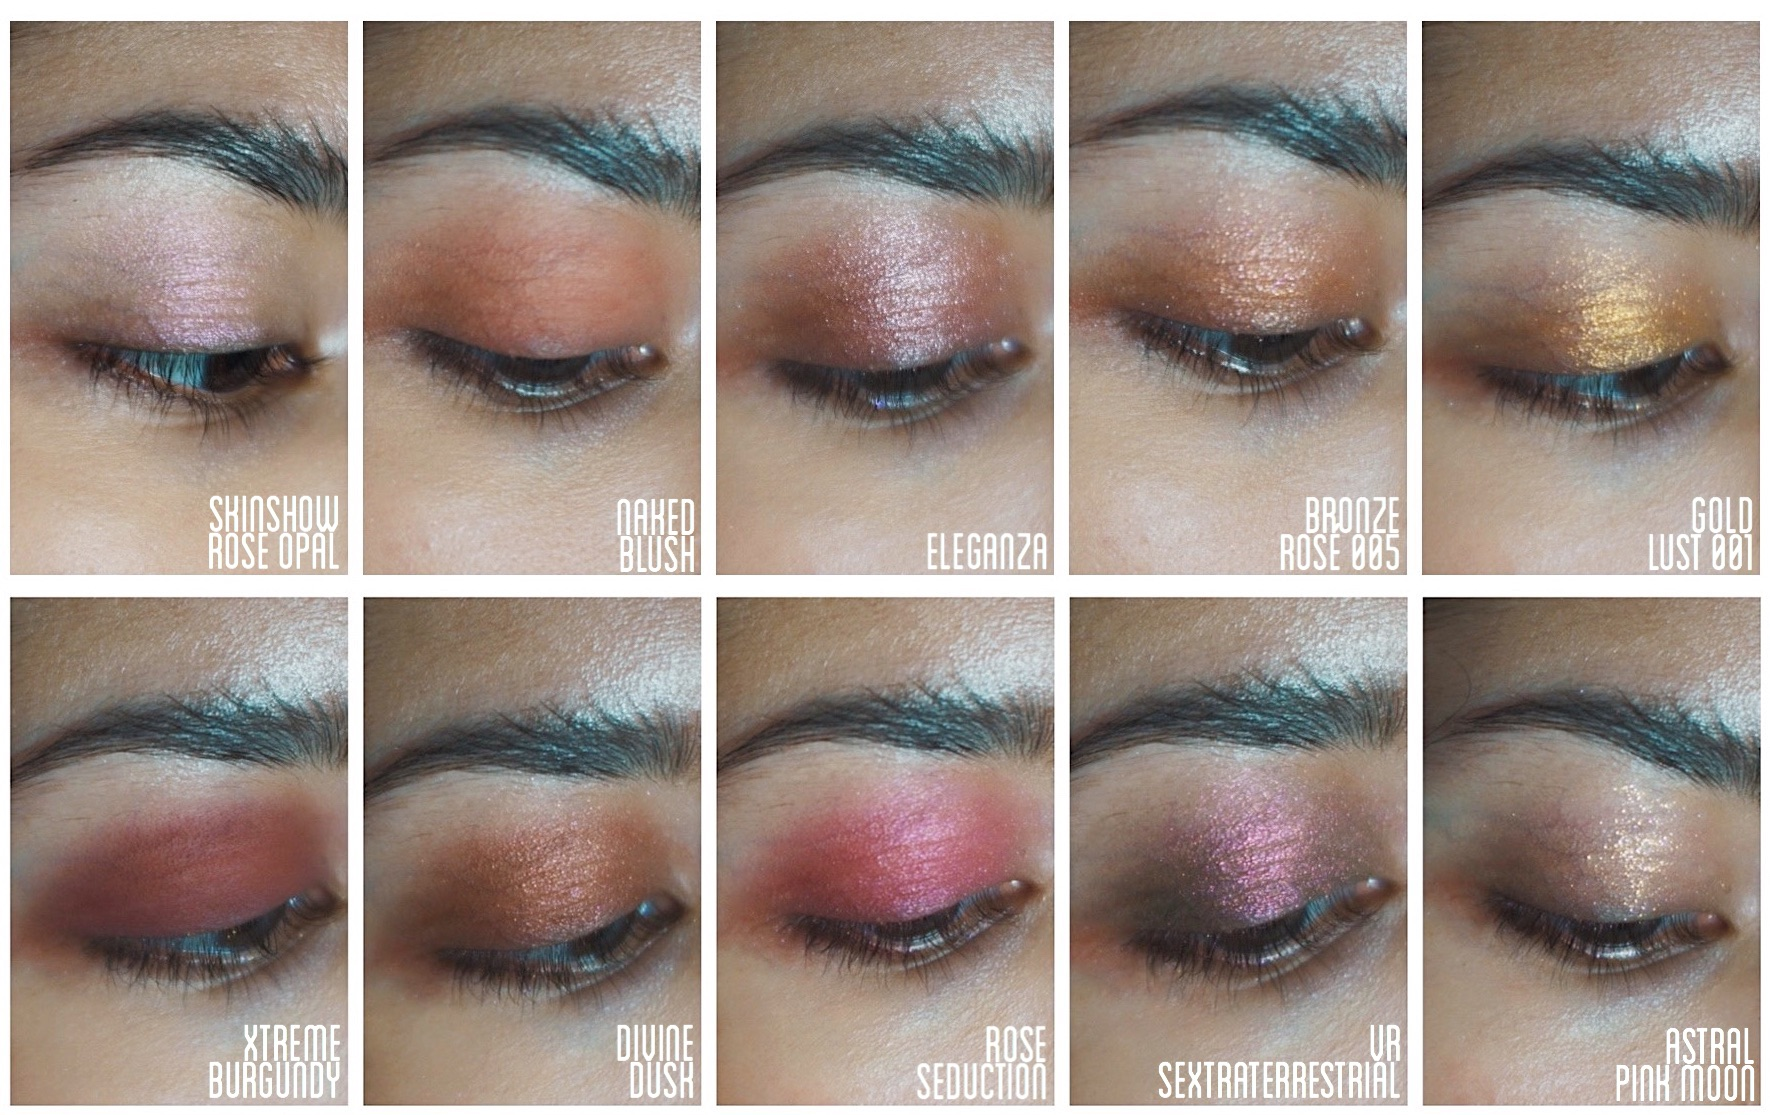 Pat McGrath mothership VIII divine rose II palette swatches medium skin review skinshow rose petal swatch, naked blush swatch, eleganza swatch, bronze rosé 005 swatch, gold lust 001 swatch, xtreme burgundy swatch, rose seduction swatch, divine dusk swatch, VR sextraterrestrial swatch, astral pink moon swatch